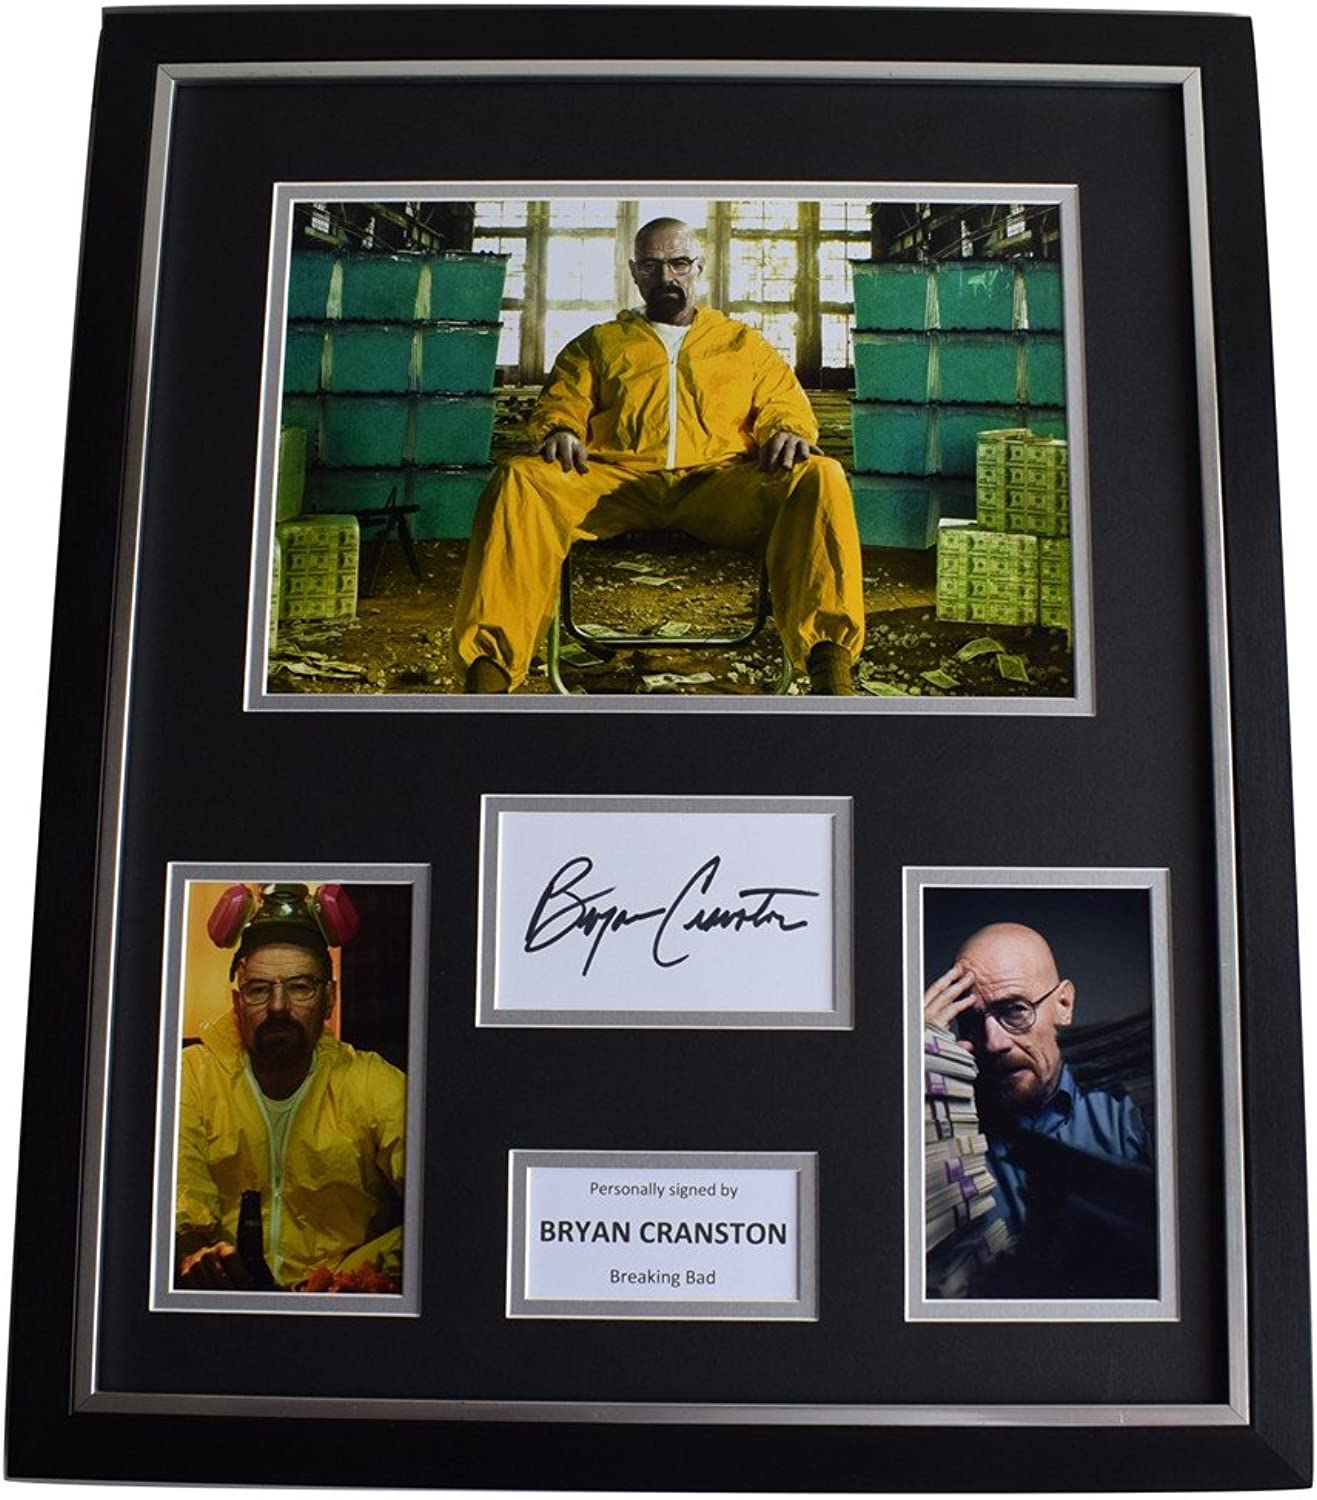 Sportagraphs Bryan Cranston SIGNED Framed Photo Autograph Huge display Breaking Bad TV COA PERFECT GIFT